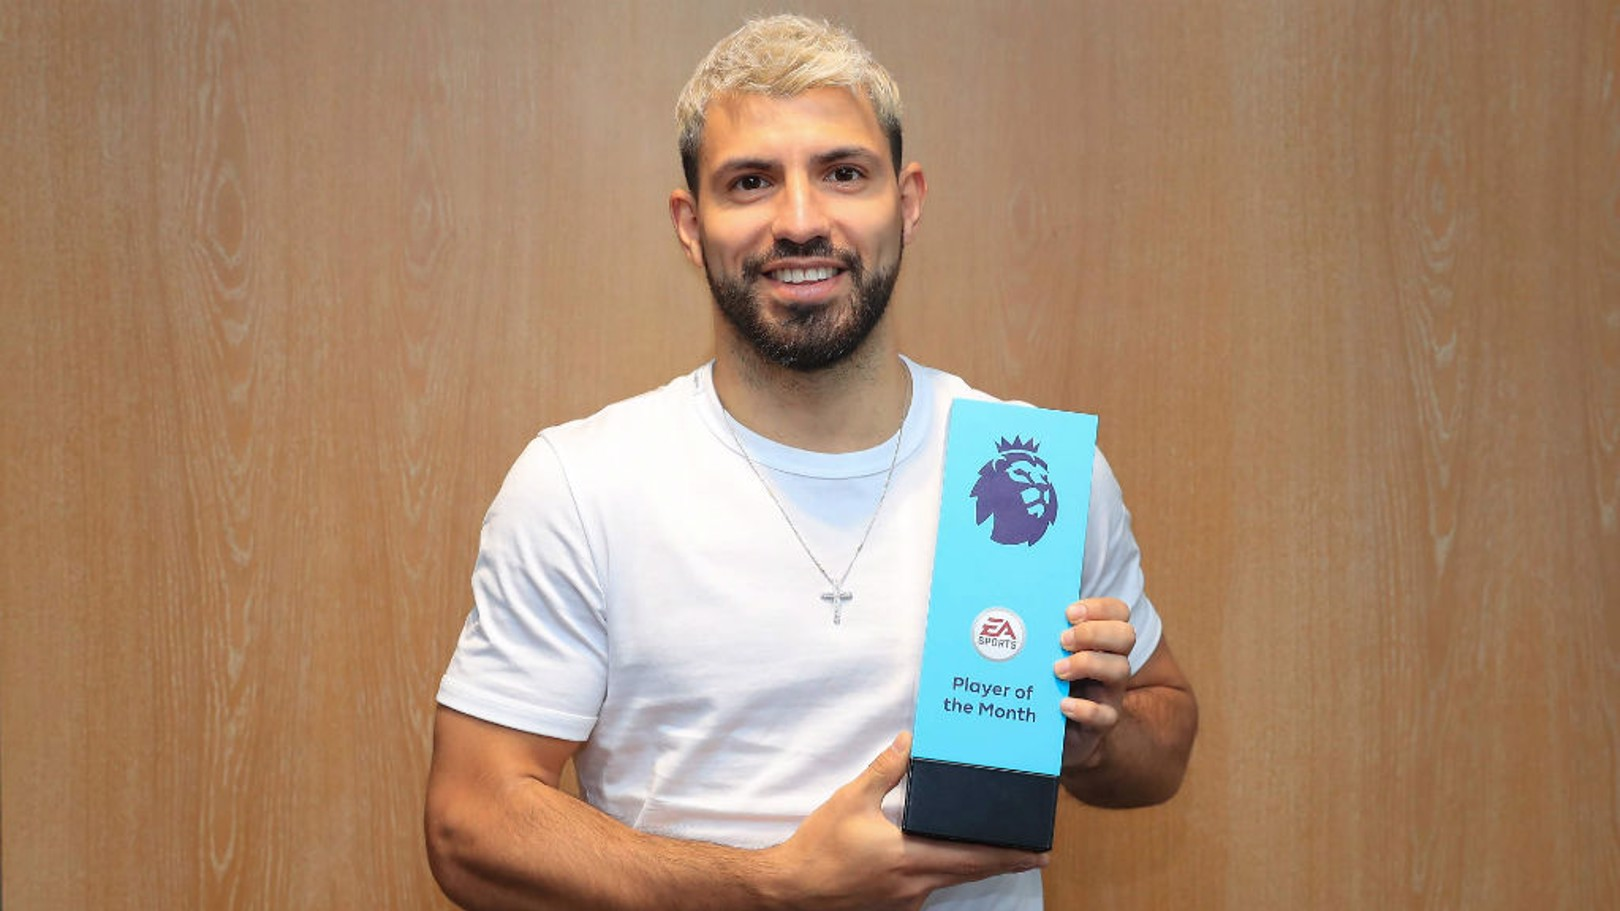 POTM: Sergio Aguero has won February's Player of the Month award